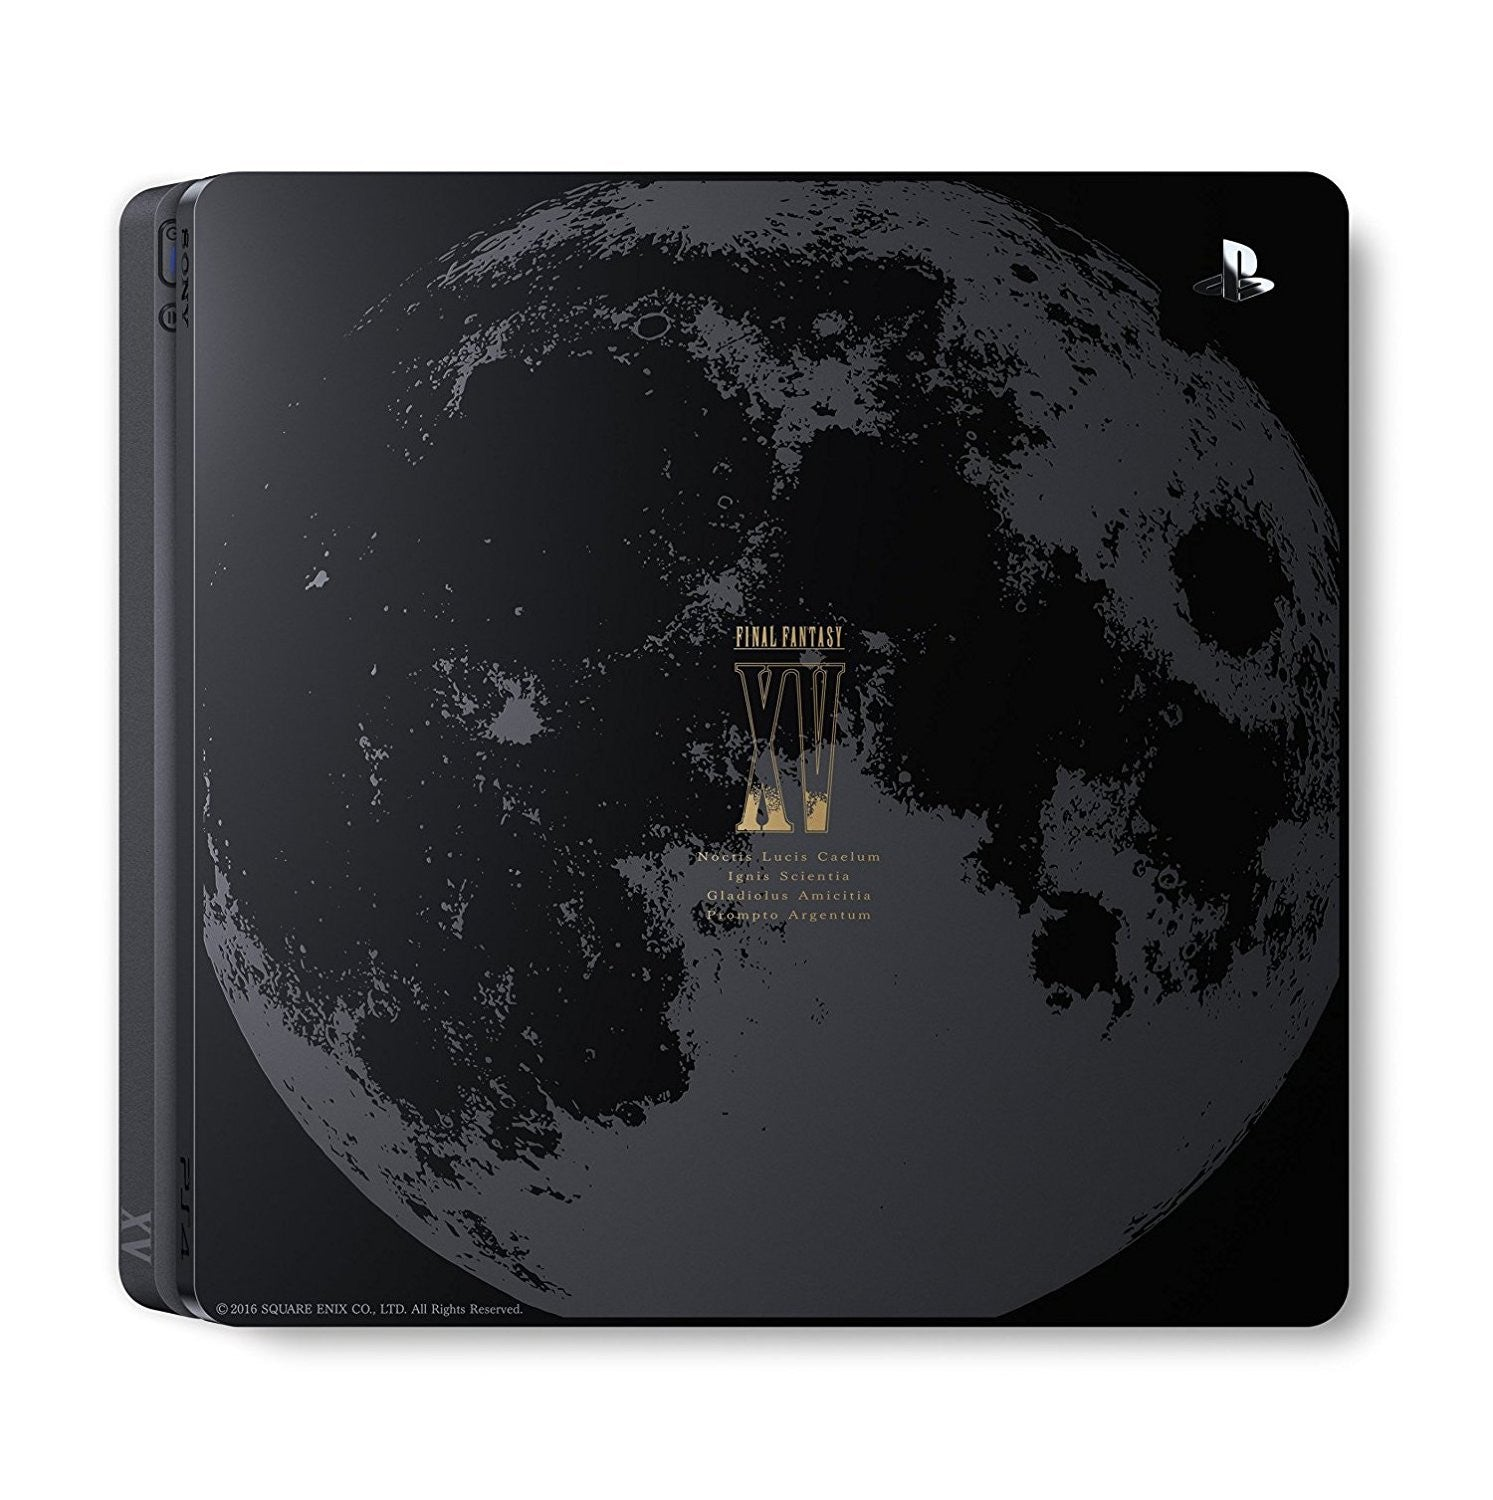 Image 2 for PlayStation 4 FINAL FANTASY XV LUNA EDITION (1TB)